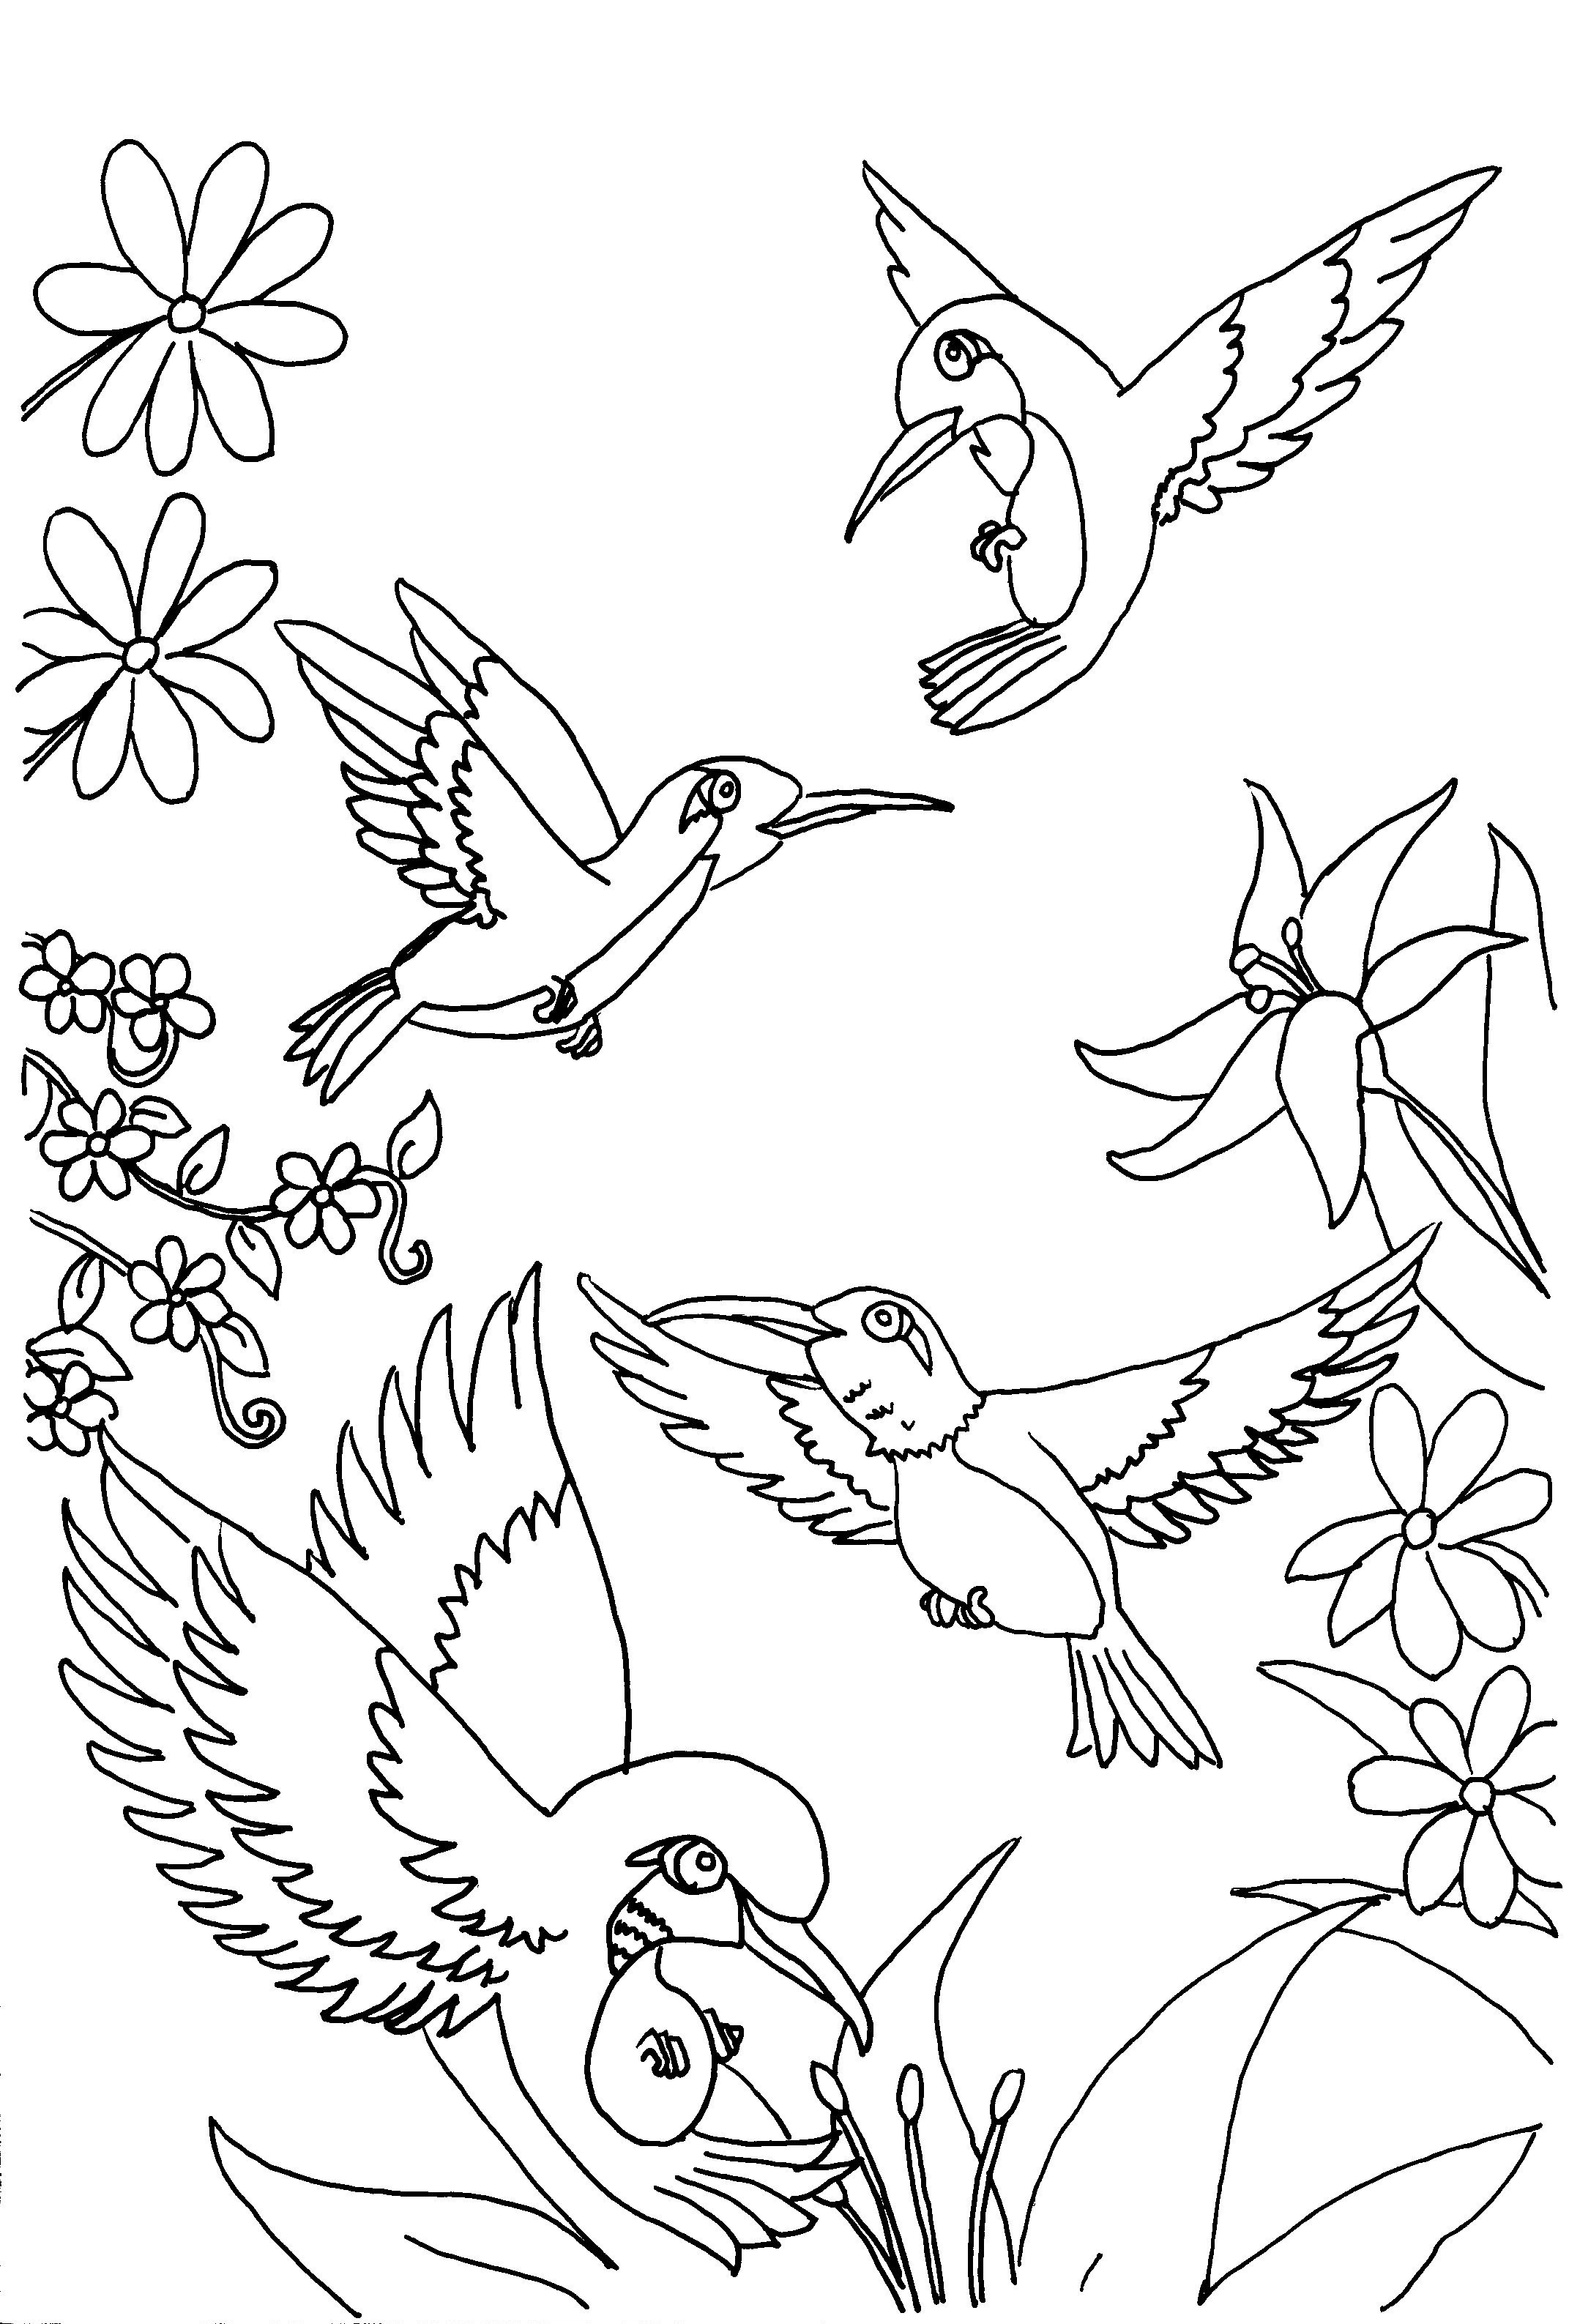 hummingbird coloring pages to download and print for free. Black Bedroom Furniture Sets. Home Design Ideas